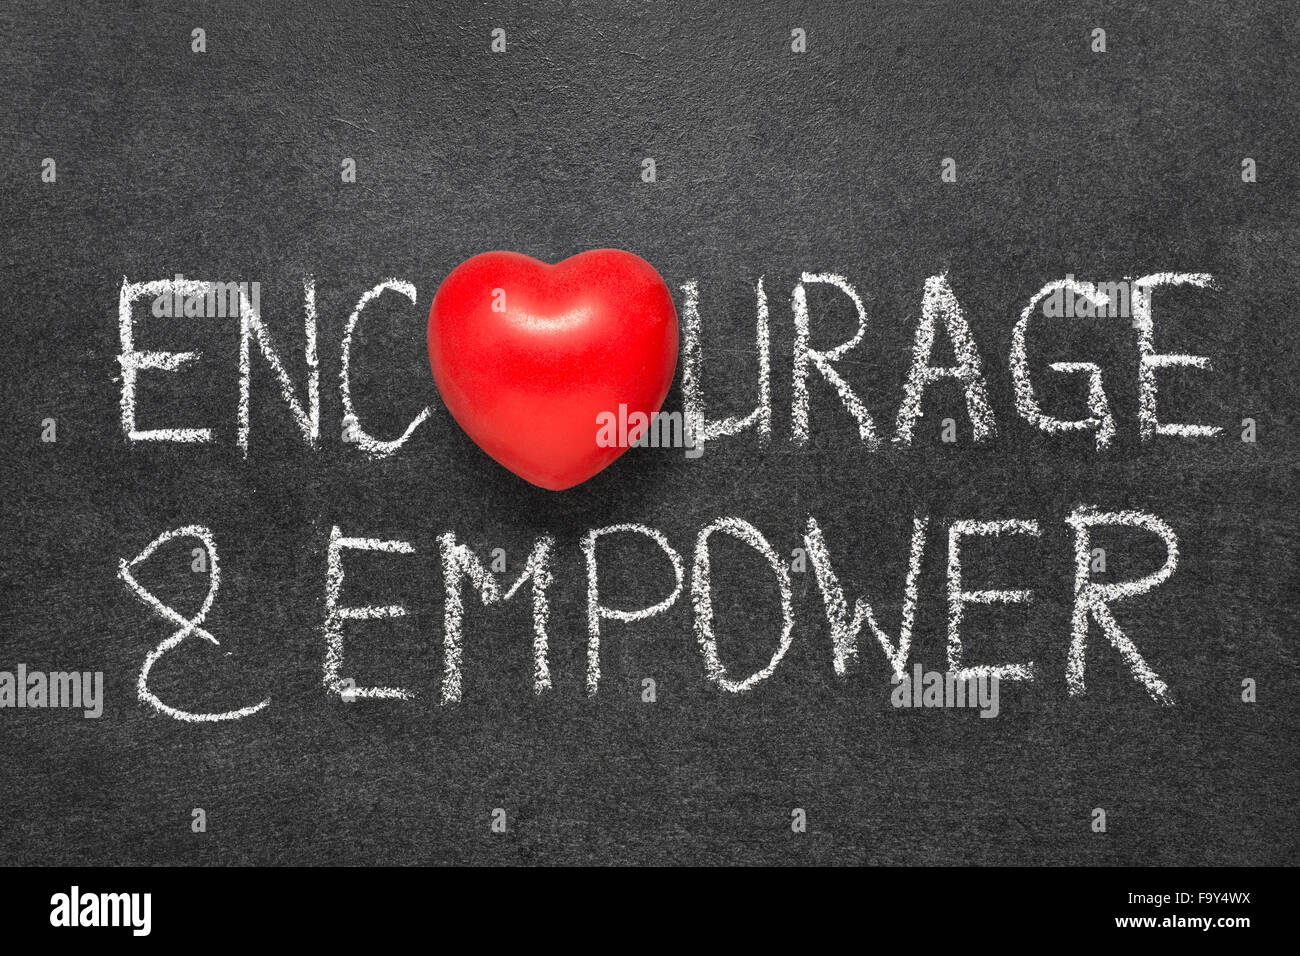 Encourage and empower words handwritten on blackboard with heart encourage and empower words handwritten on blackboard with heart symbol instead o biocorpaavc